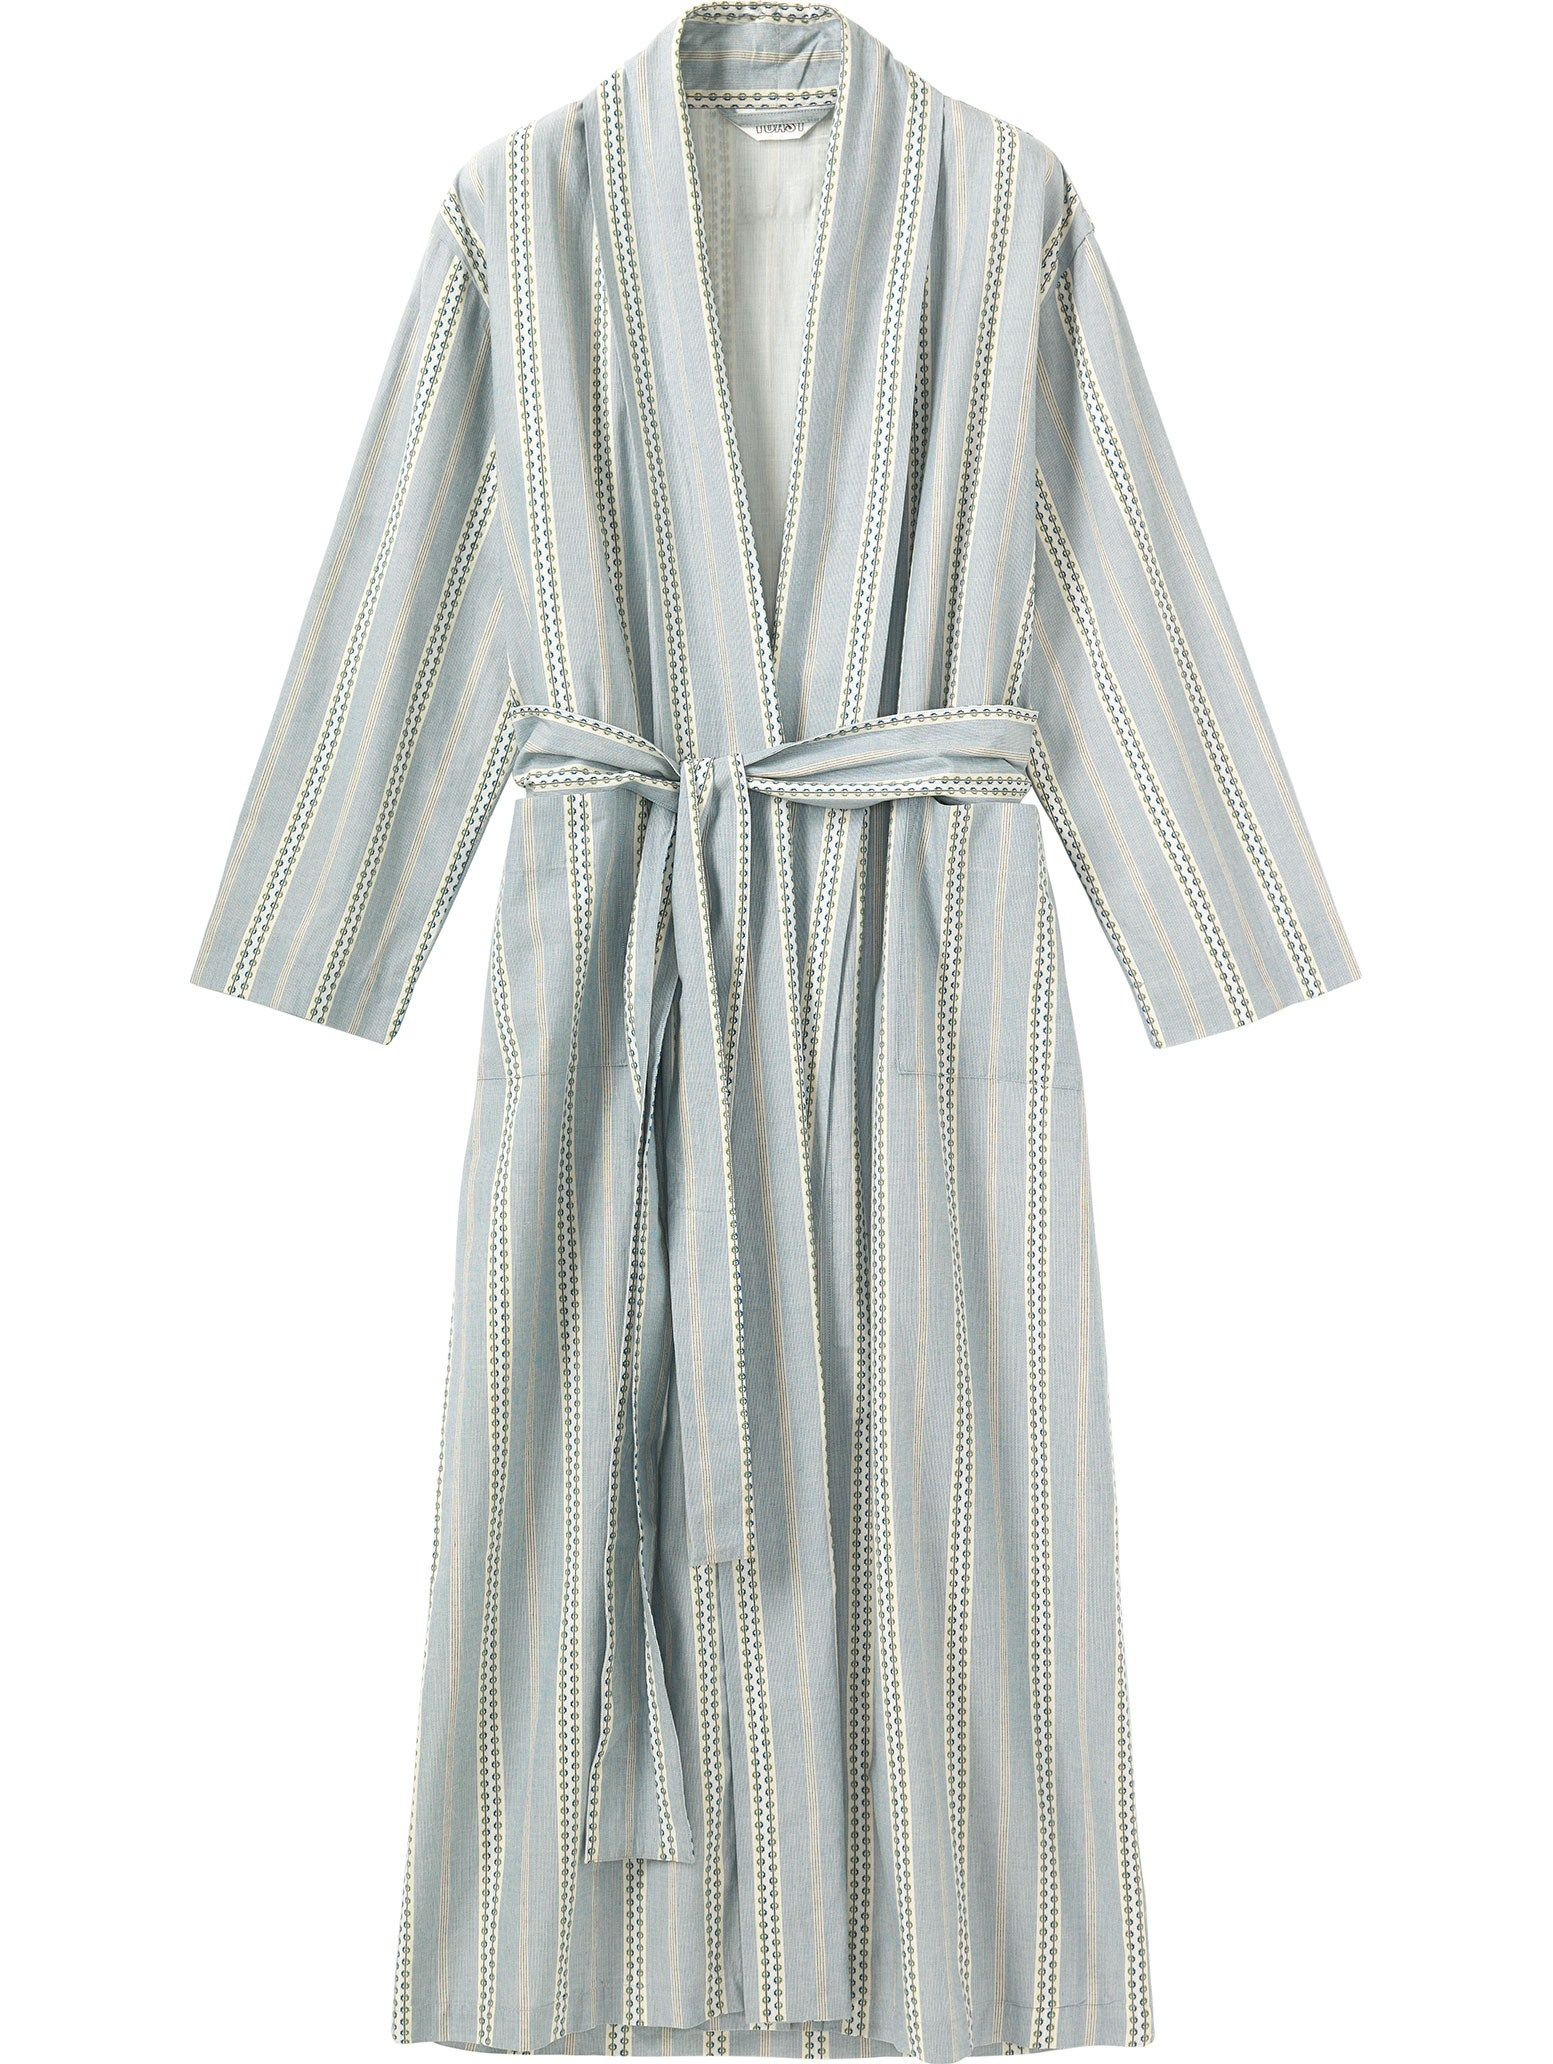 WOVEN DOBBY STRIPE GOWN - Long gown in a yarn-dyed, woven cotton dobby stripe. Two patch pockets. Self tie.